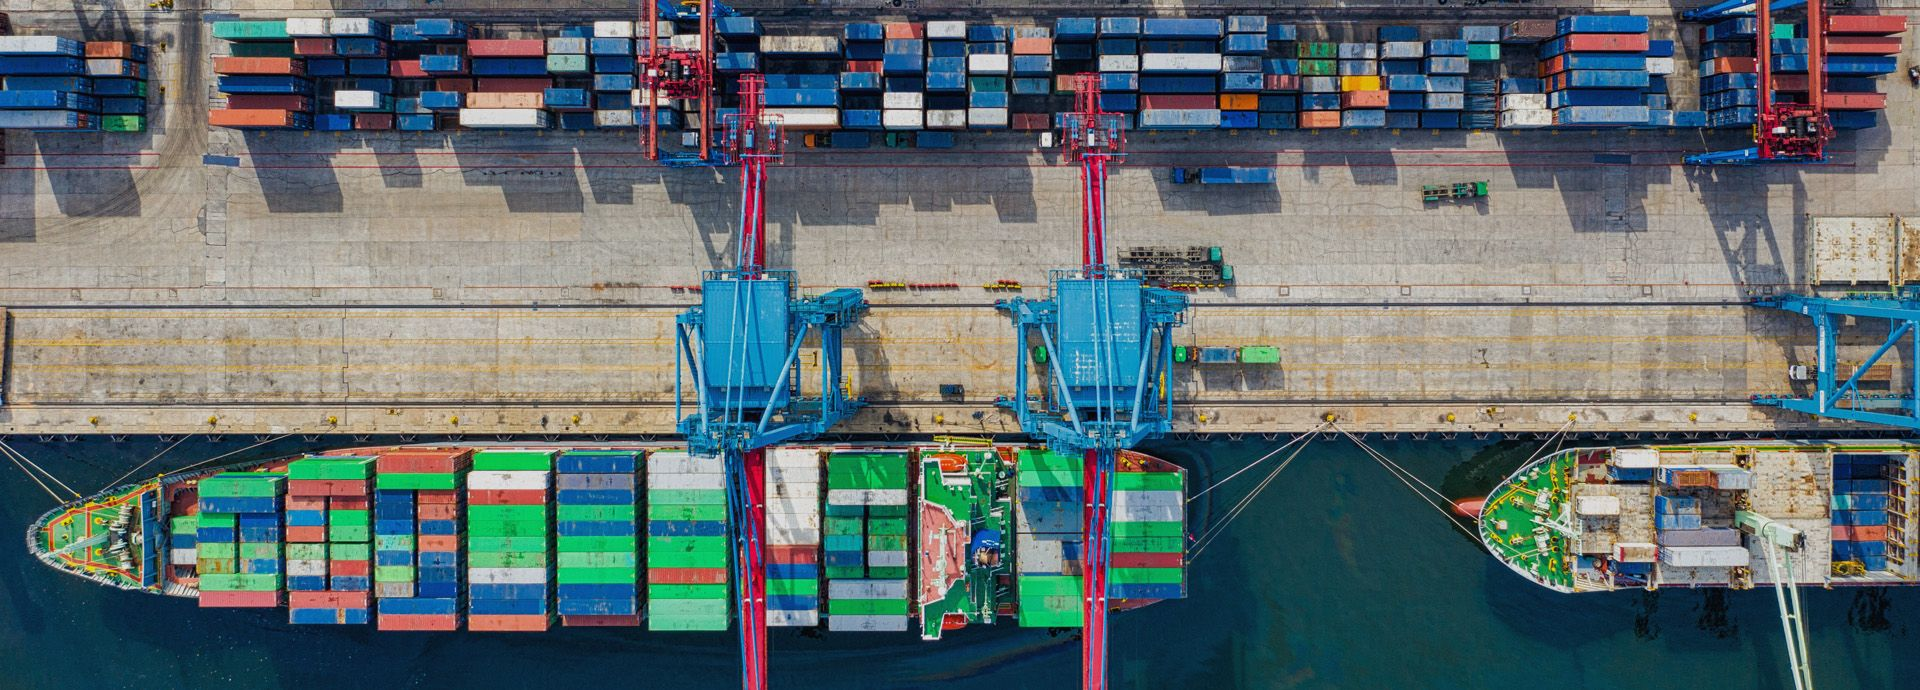 "<p style=""text-align: justify;""><strong>Each GSAN Member is required to adhere to the highest standards of ethics and professional conduct in their business activities.&nbsp;&nbsp; GSAN Members are required to meet and exceed internationally accepted conventions, maritime laws and practices regarding cargo handling, associated documentation and disbursement accounting.&nbsp; No exceptions.<br /></strong></p>"